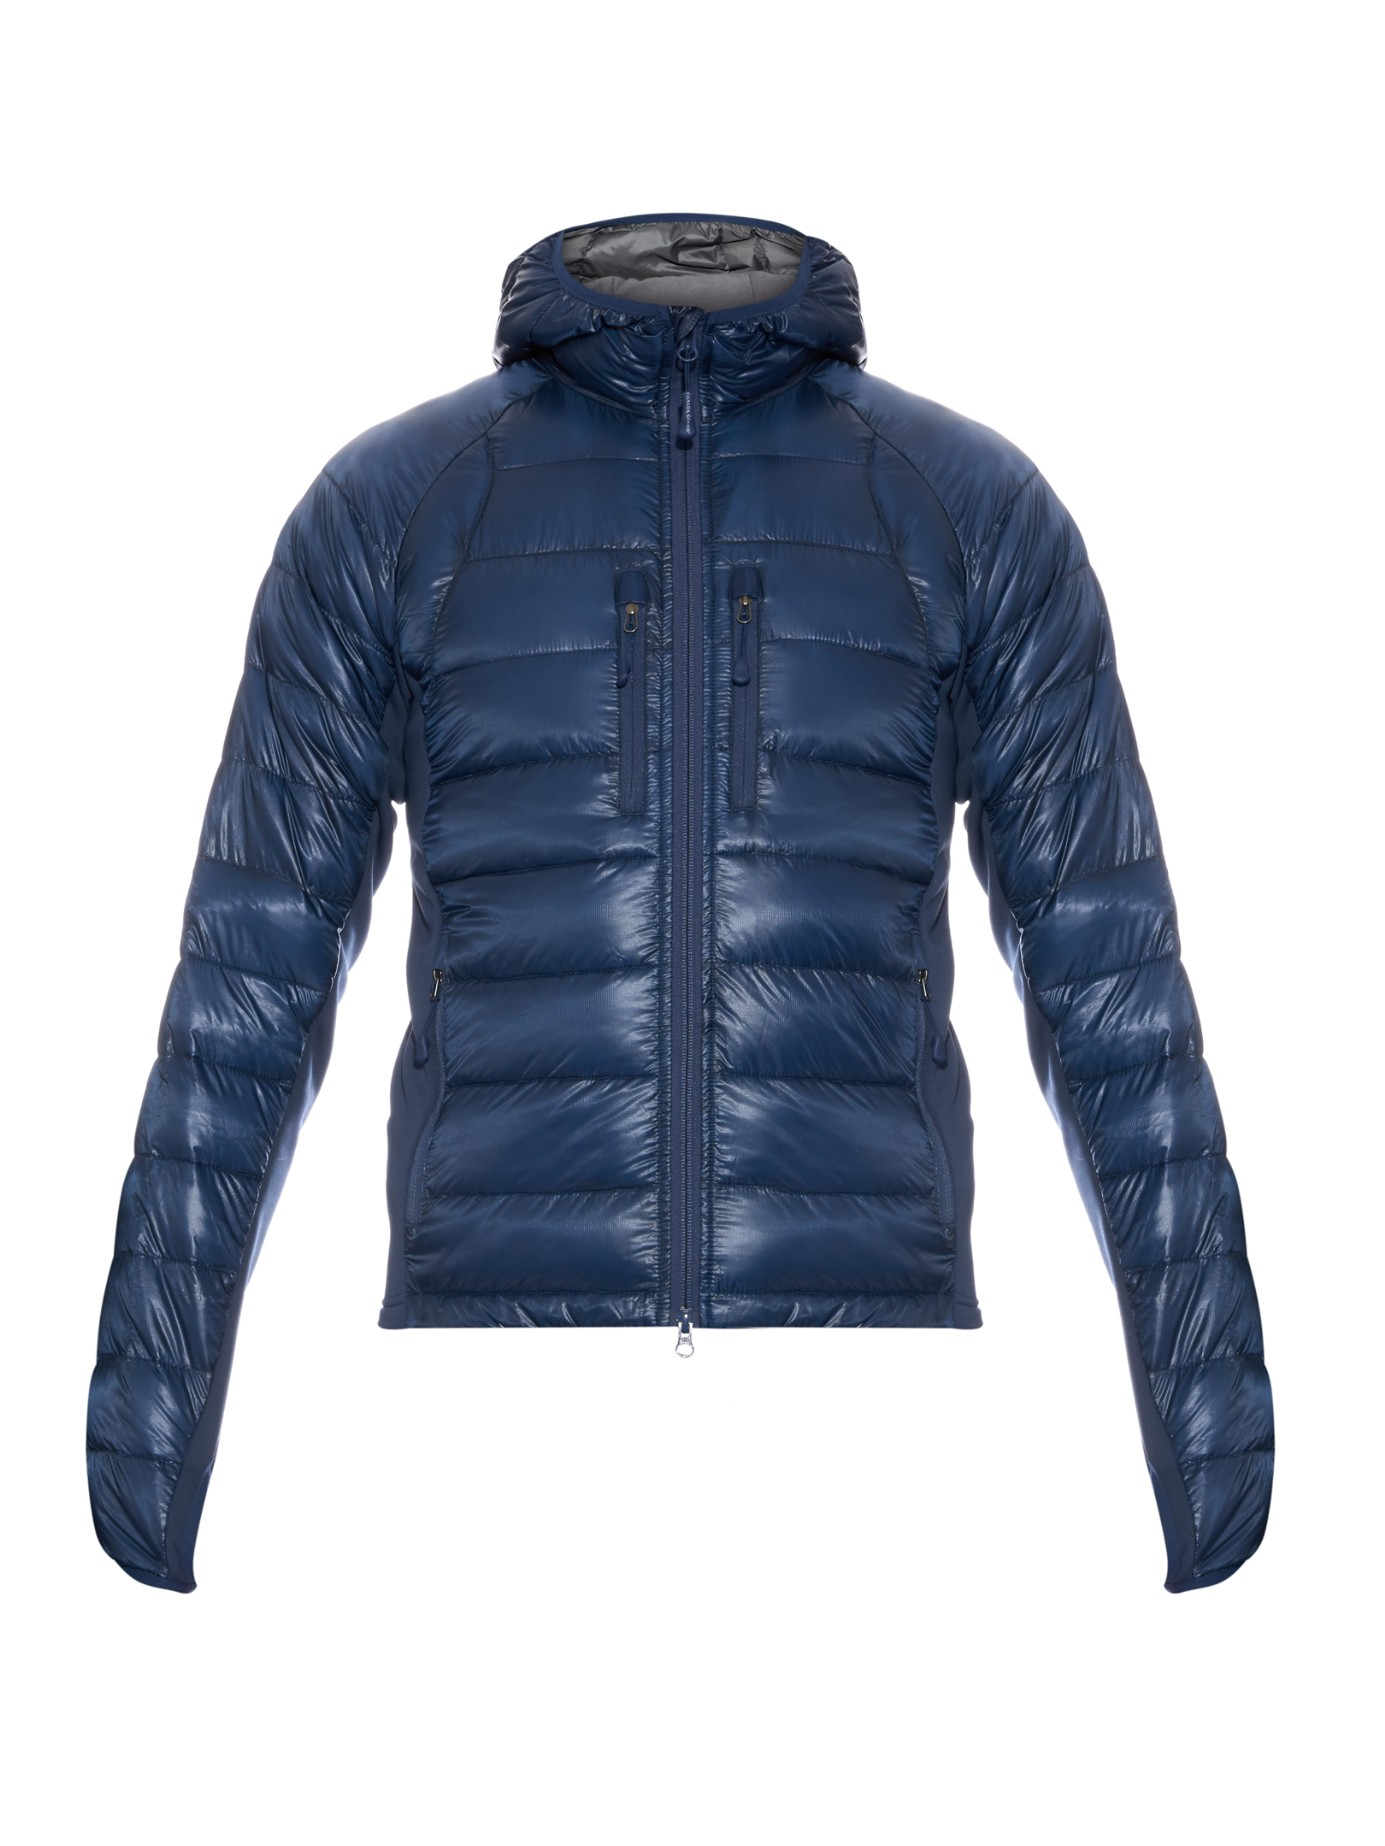 Canada Goose Hybridge Lite Jacket Mens - photo#25